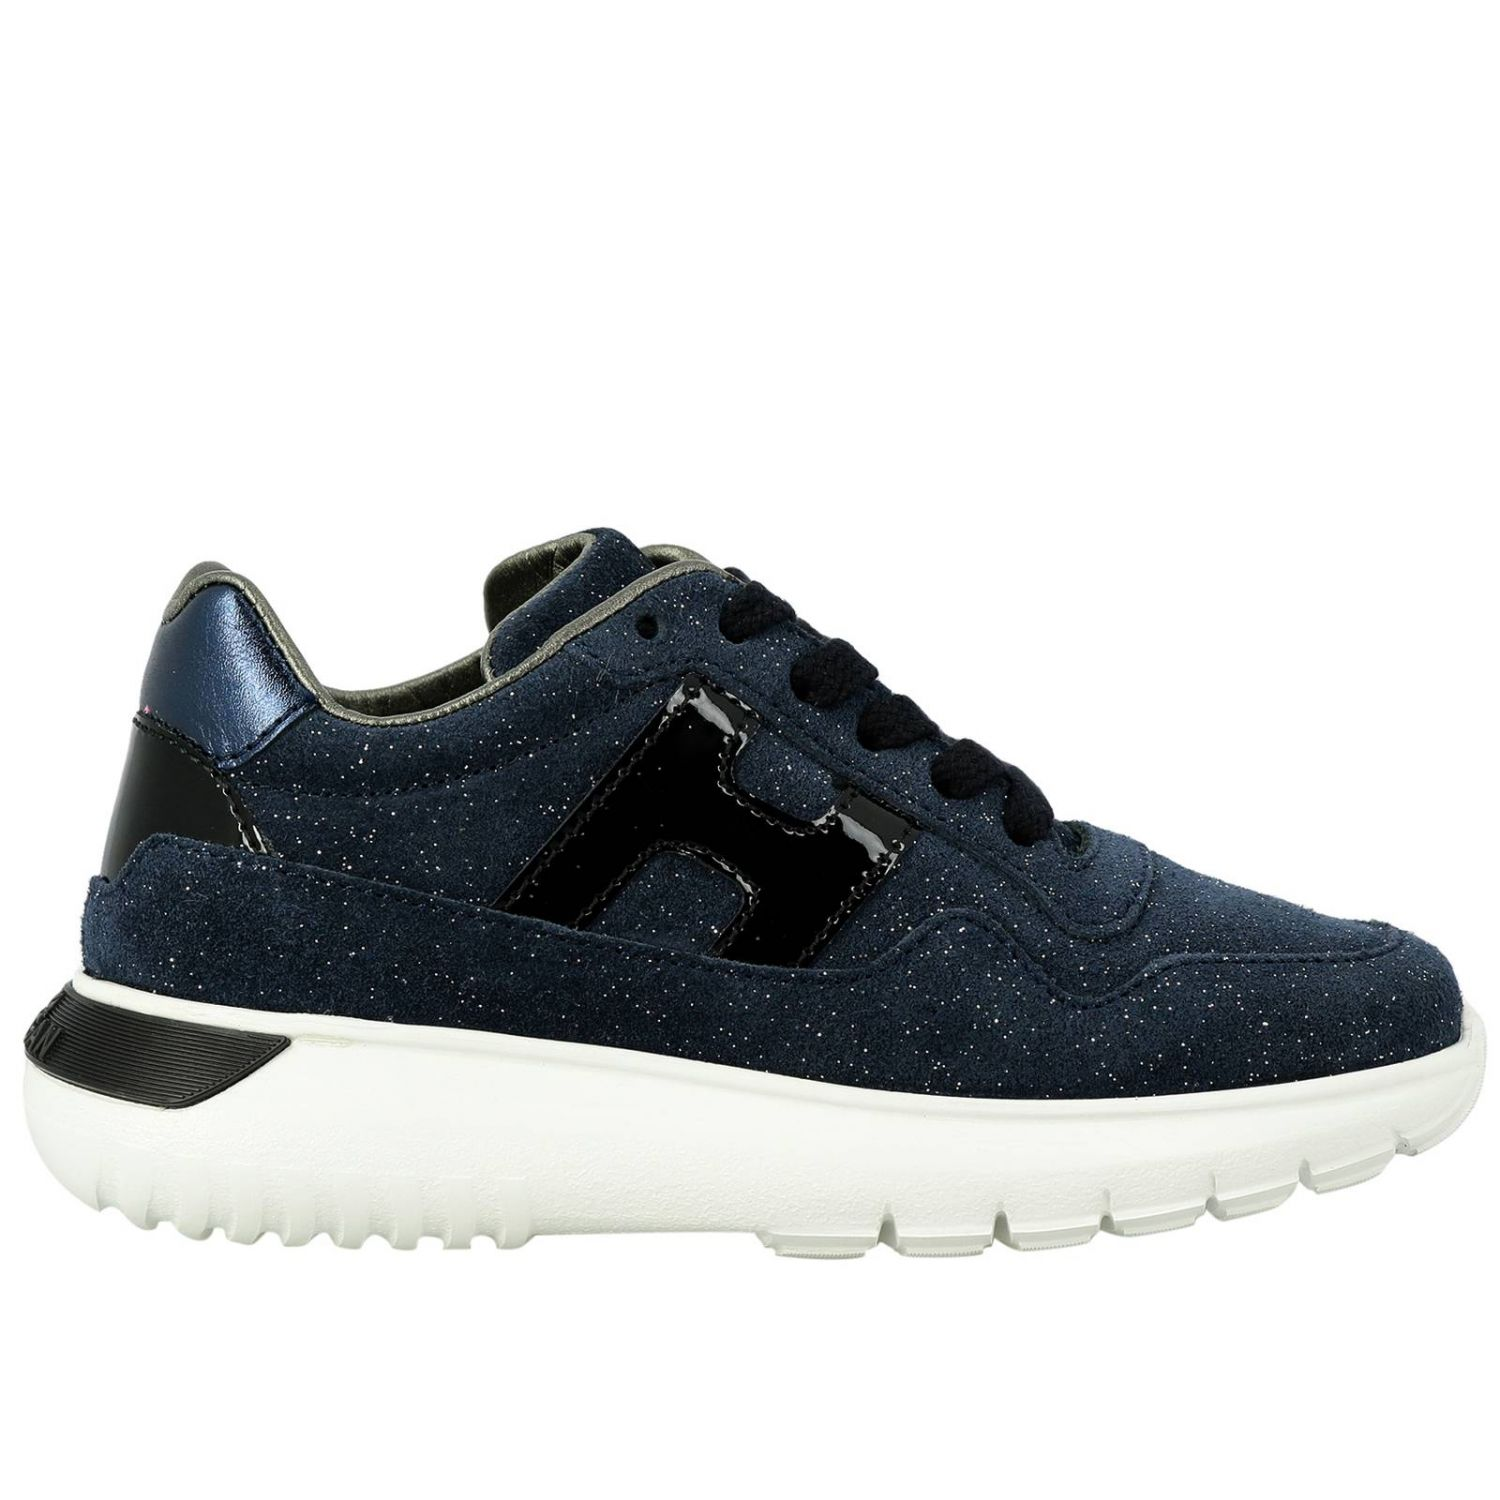 Cube Hogan glitter suede sneakers with patent leather H blue 1